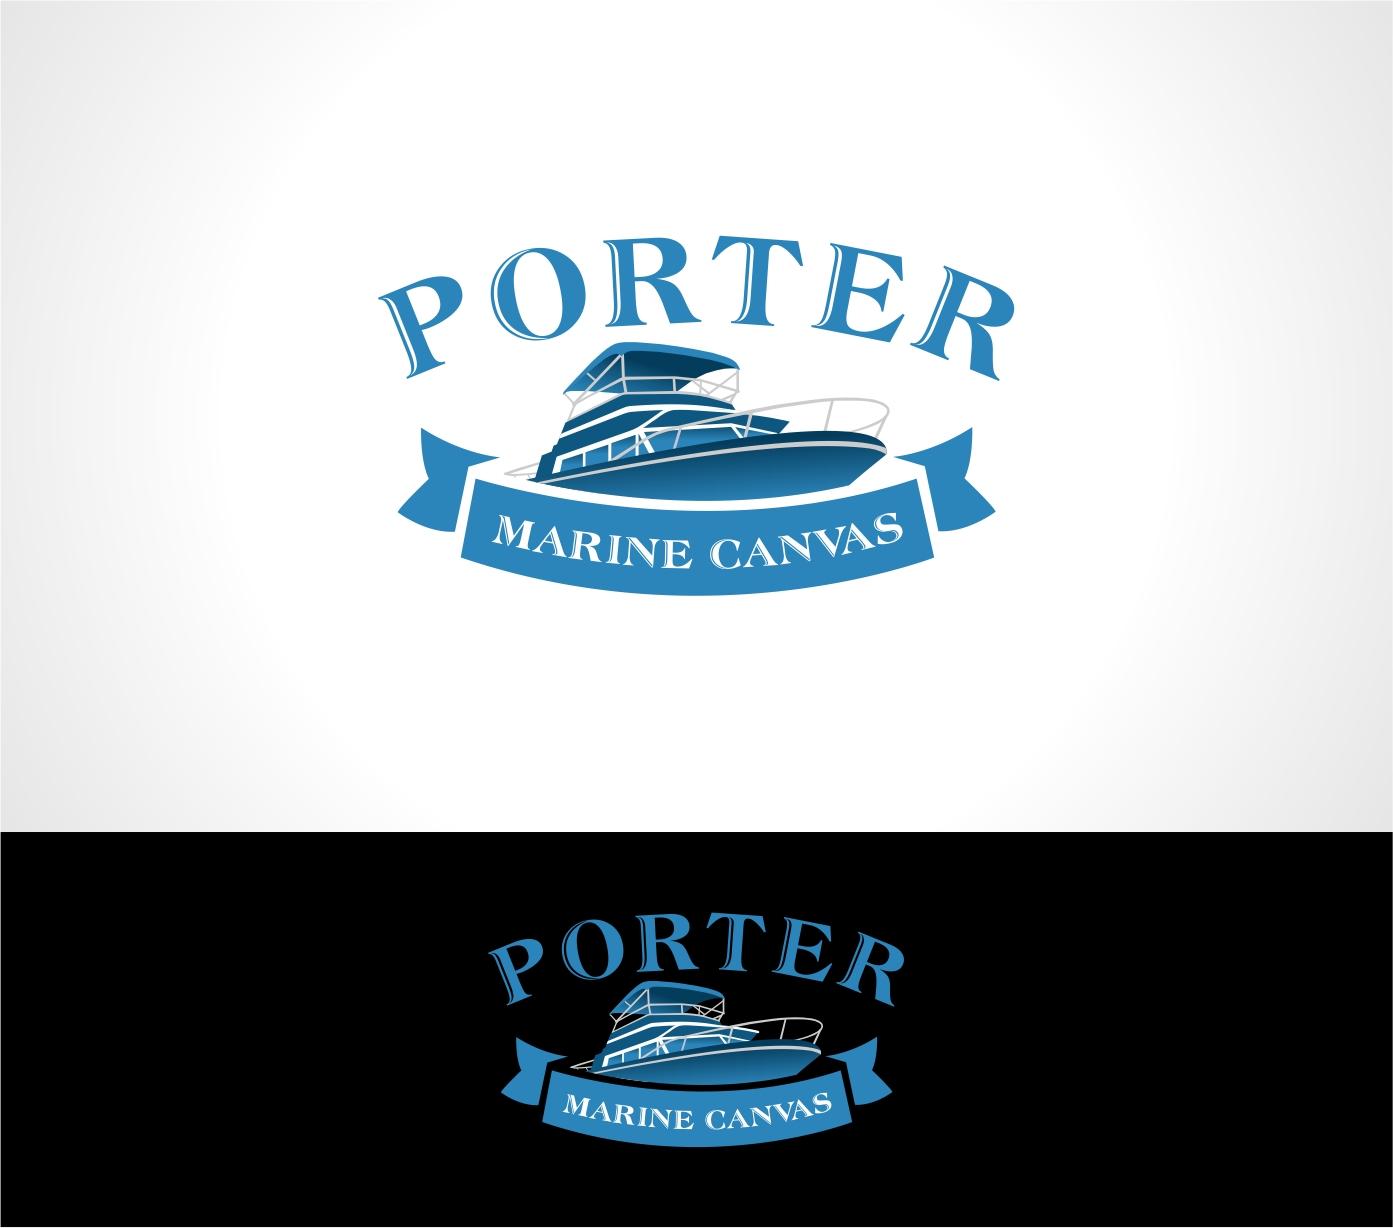 Logo Design by haidu - Entry No. 103 in the Logo Design Contest Imaginative Logo Design for Porter Marine Canvas.